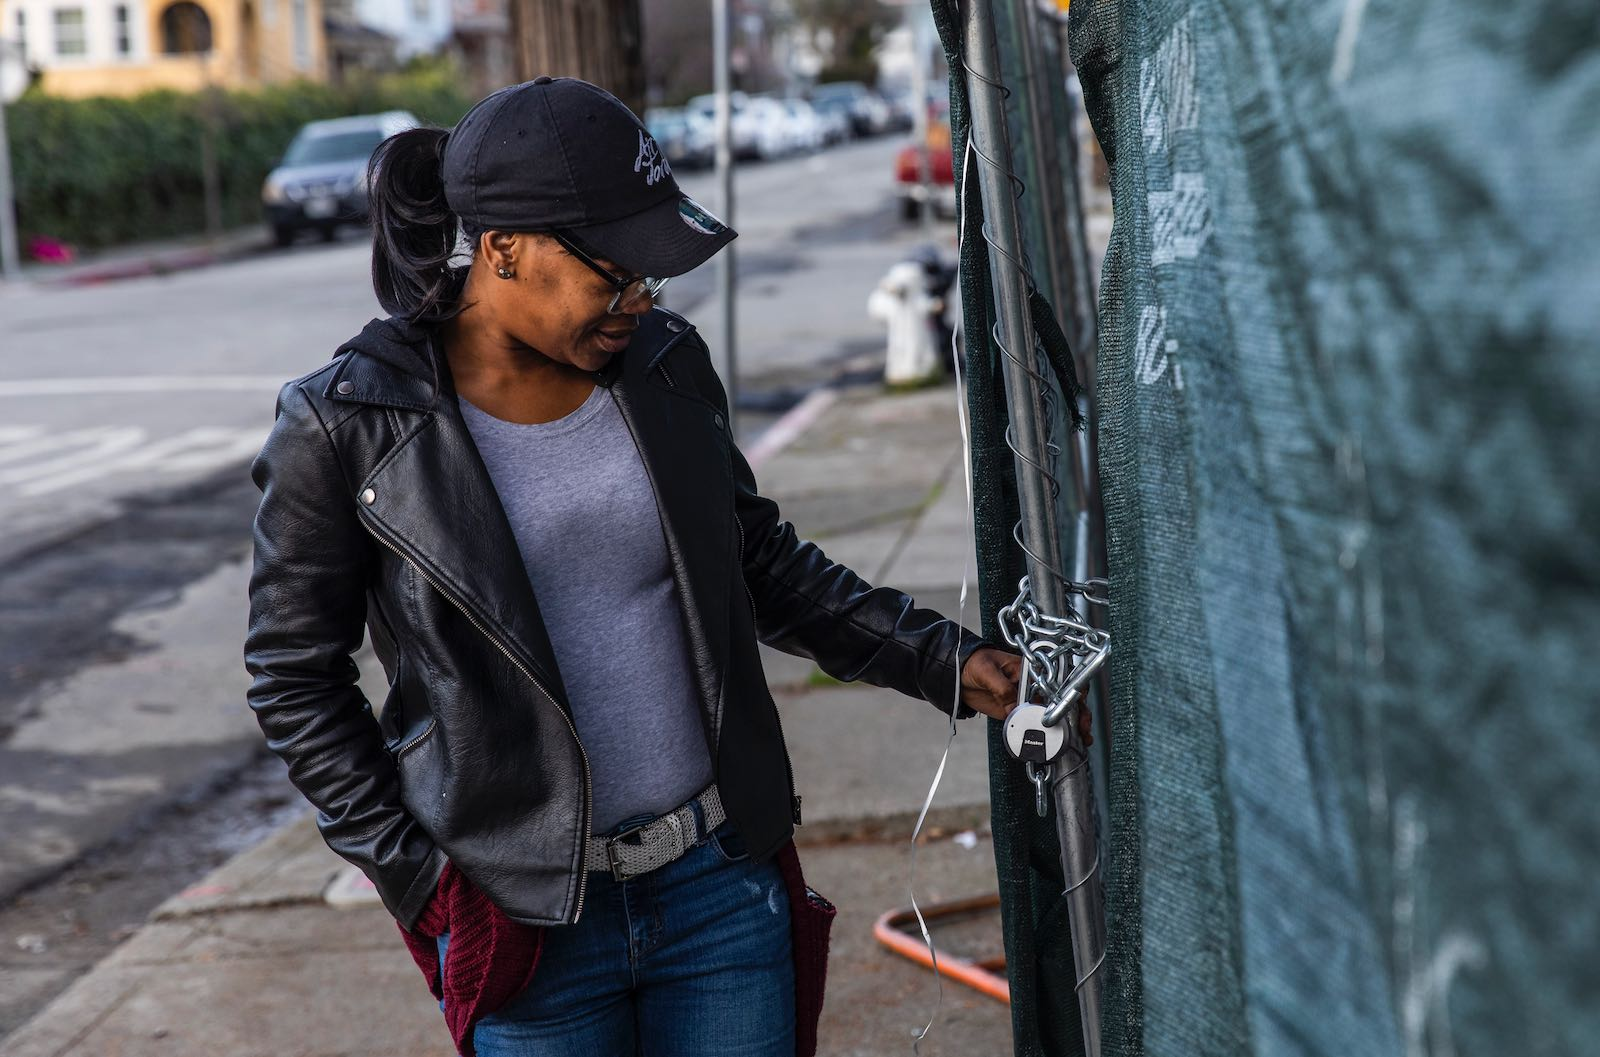 Moms 4 Housing activist Misty Cross surveying the fencing outside the home she was evicted from